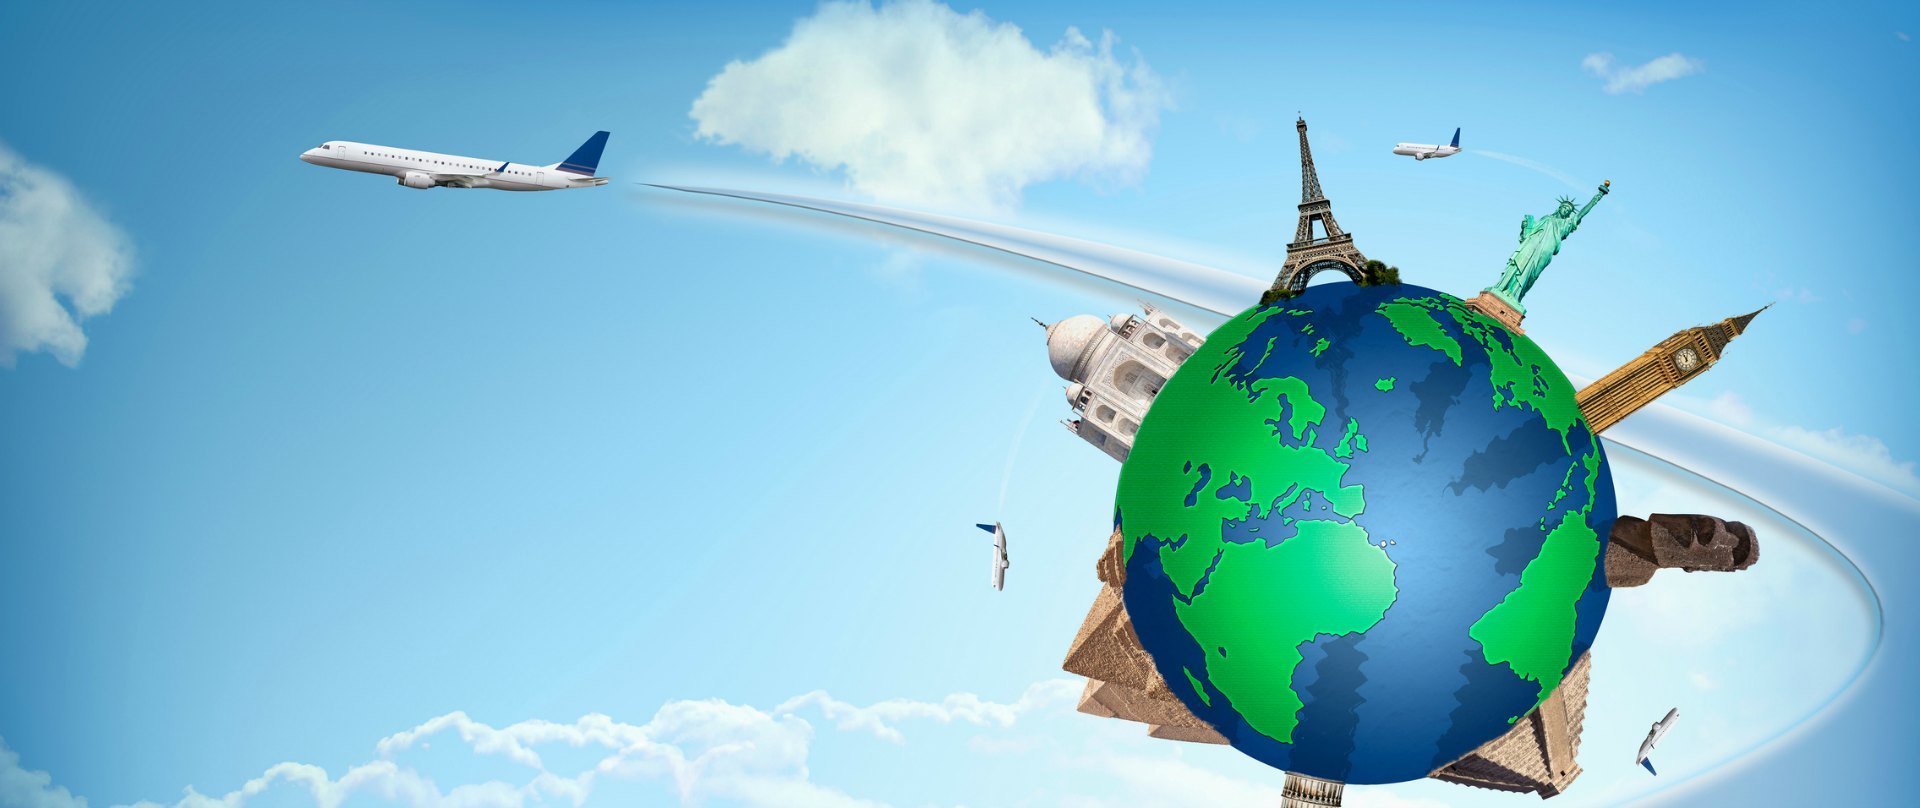 Study of the airline industry important